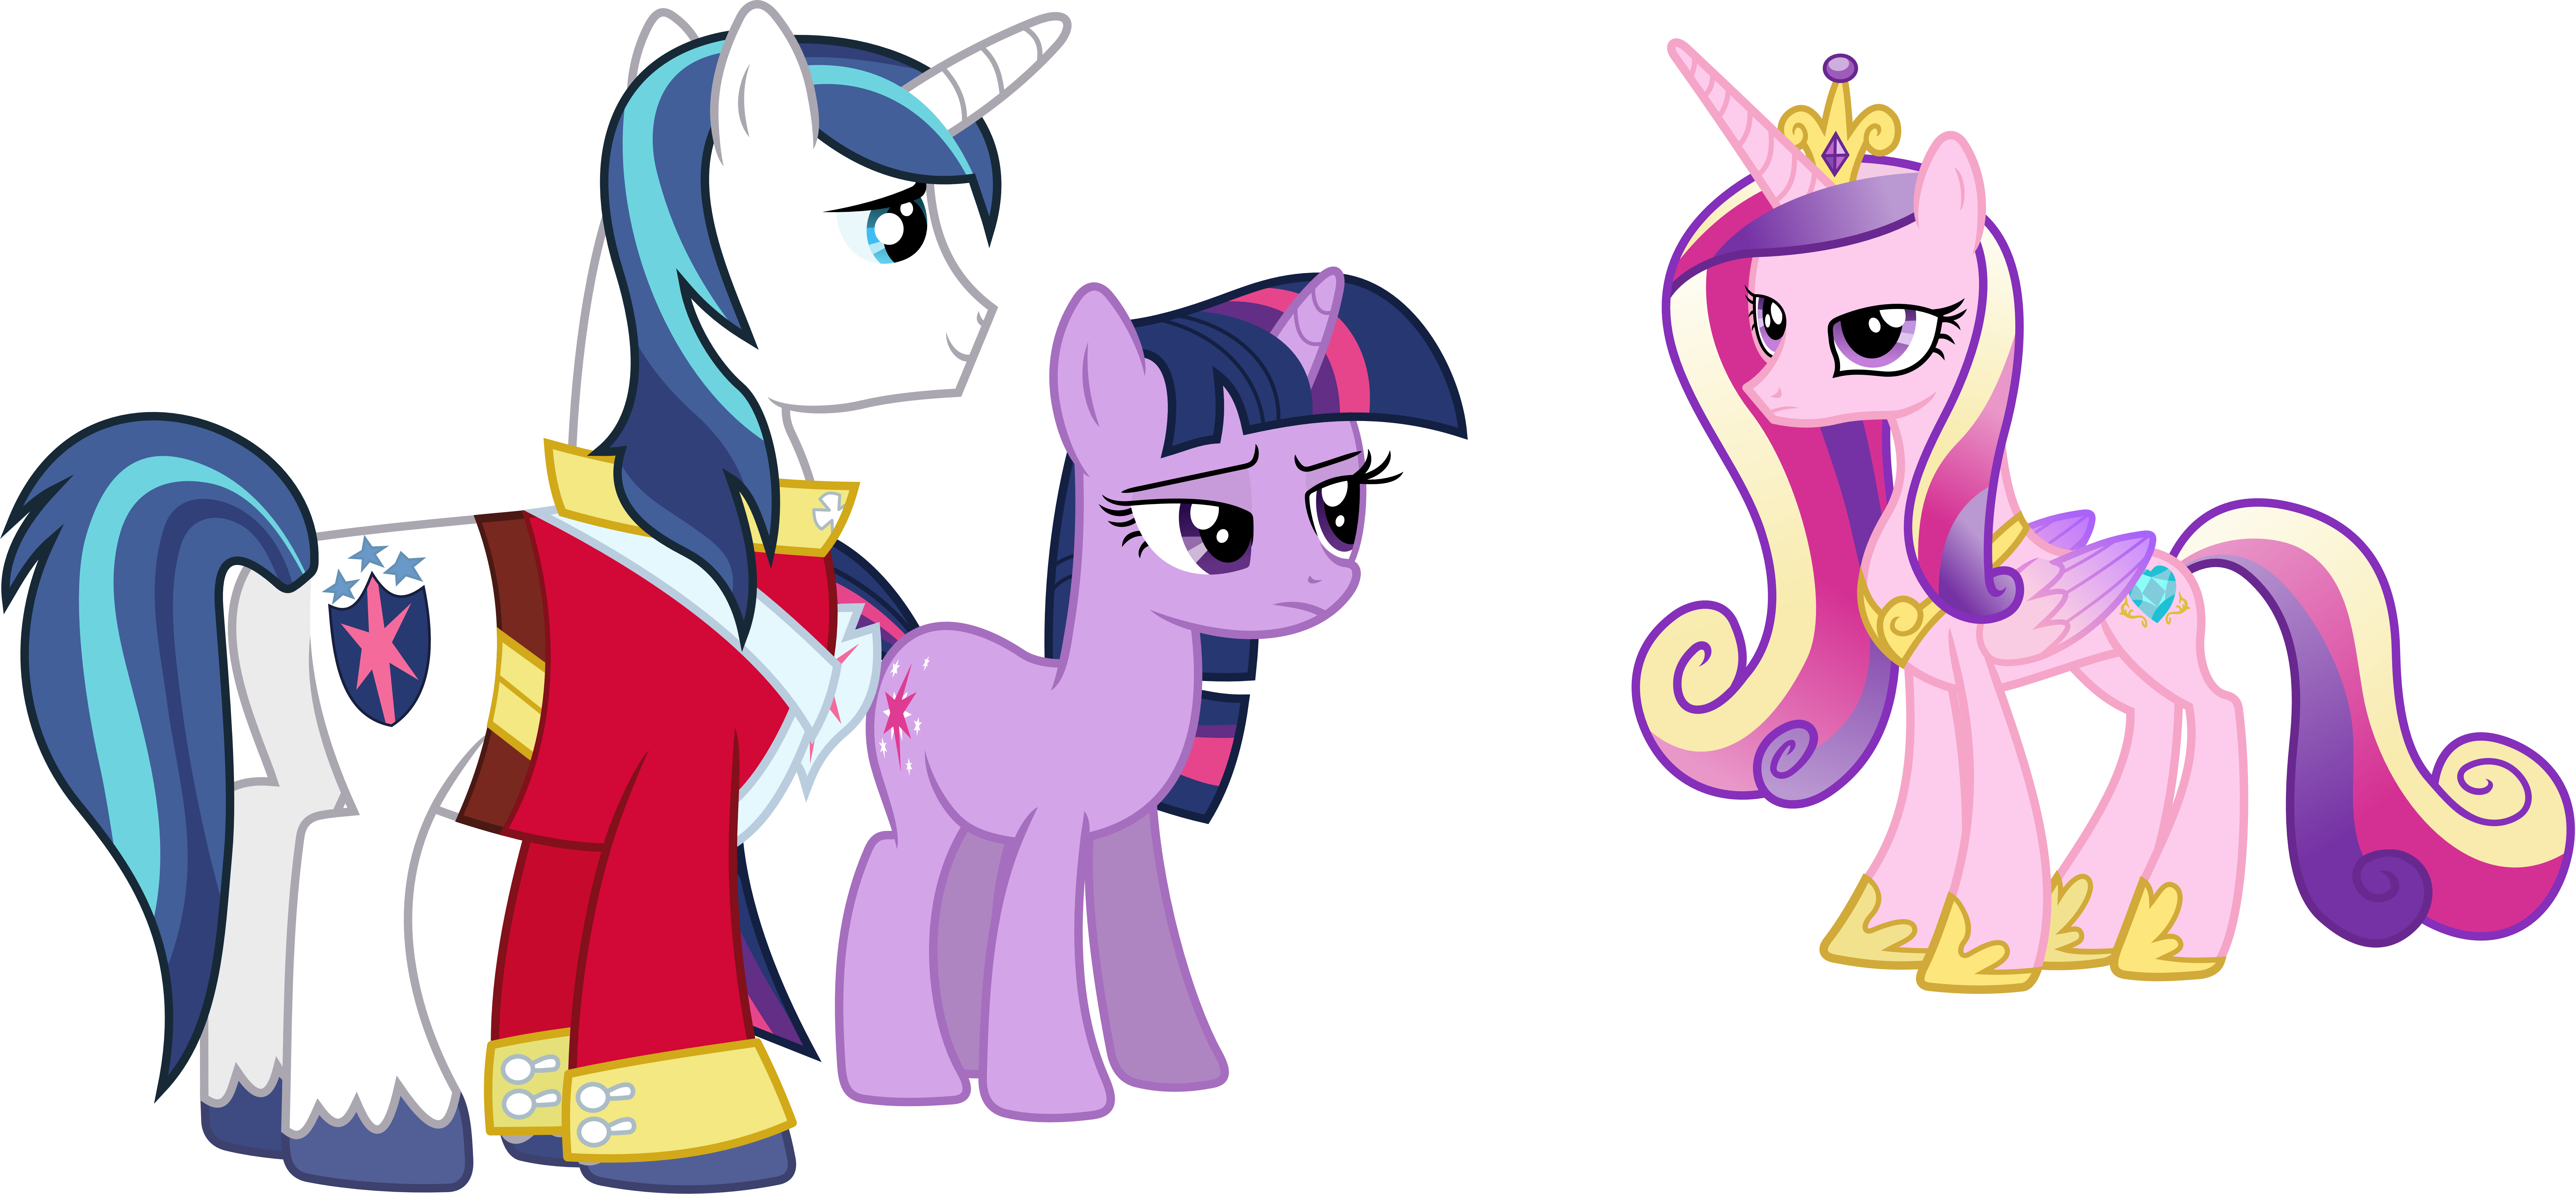 Mlp R34 Cadence And Shining Armor Download